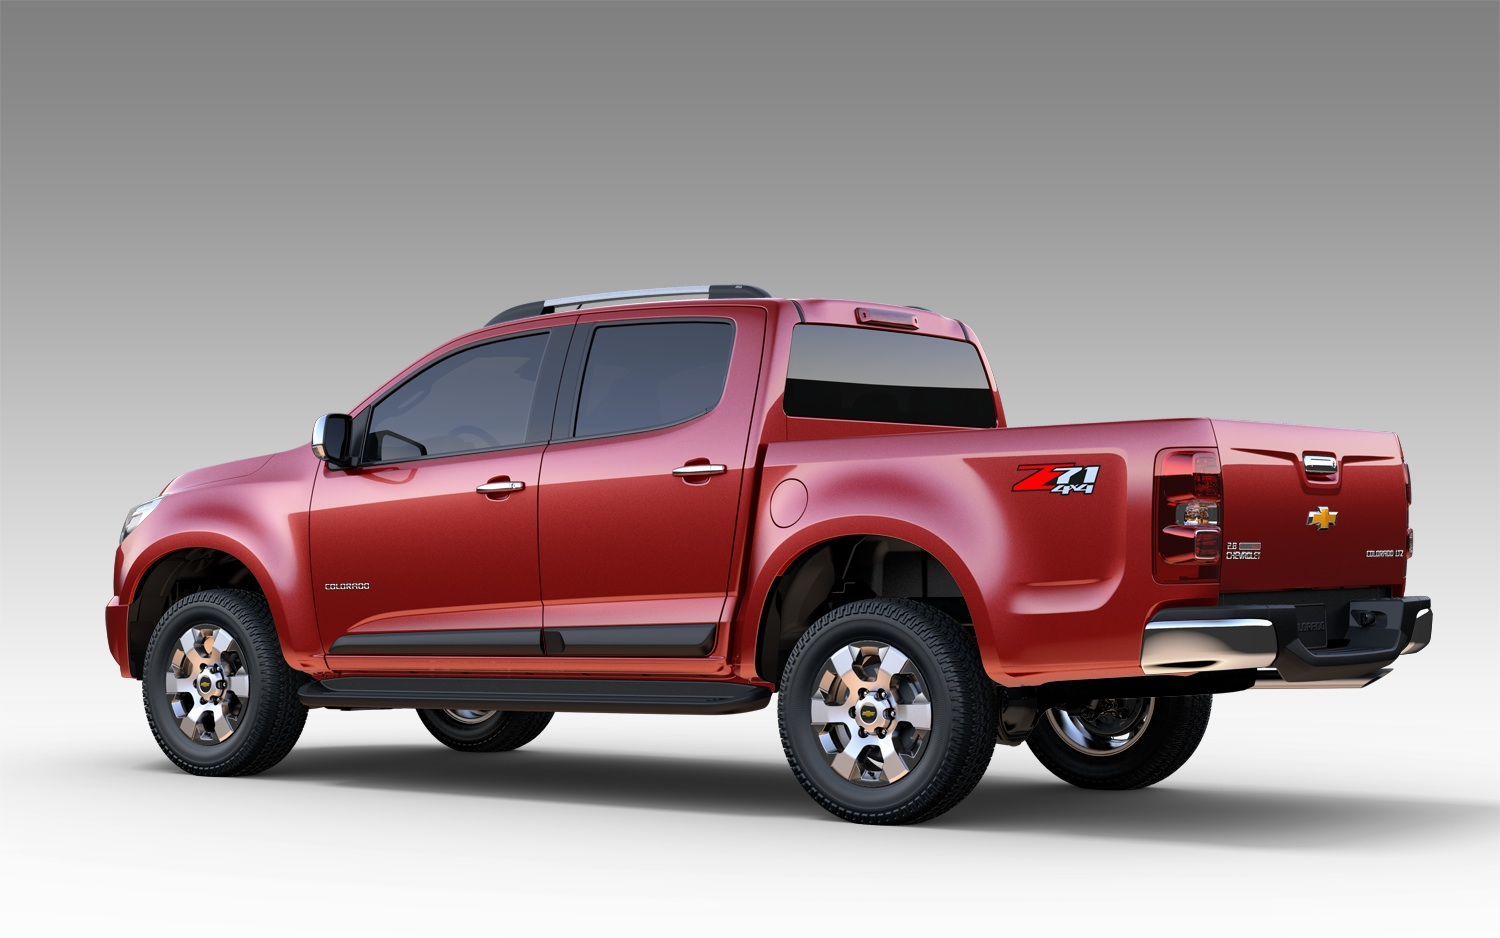 chevrolet colorado now available in phl philippine car news car reviews automotive features. Black Bedroom Furniture Sets. Home Design Ideas